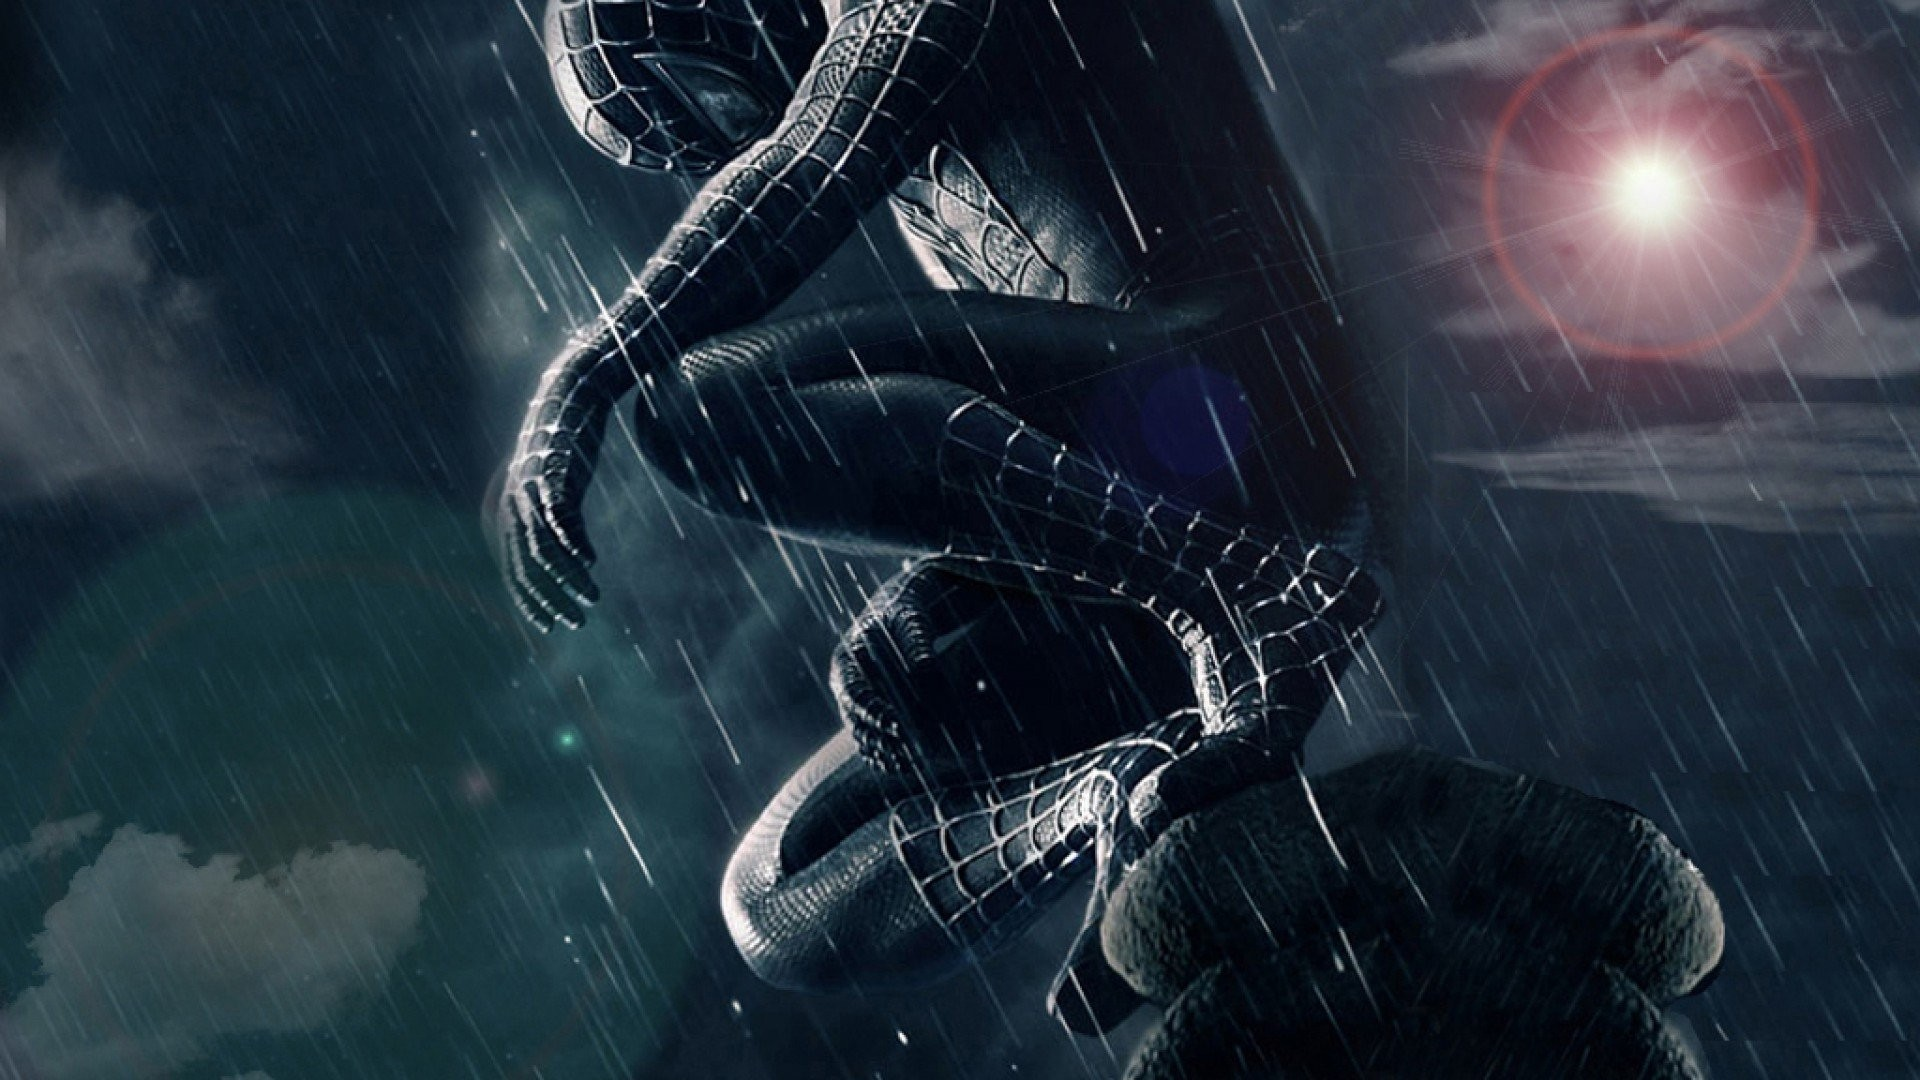 Spiderman Wallpaper HD Download Free HD Wallpapers For